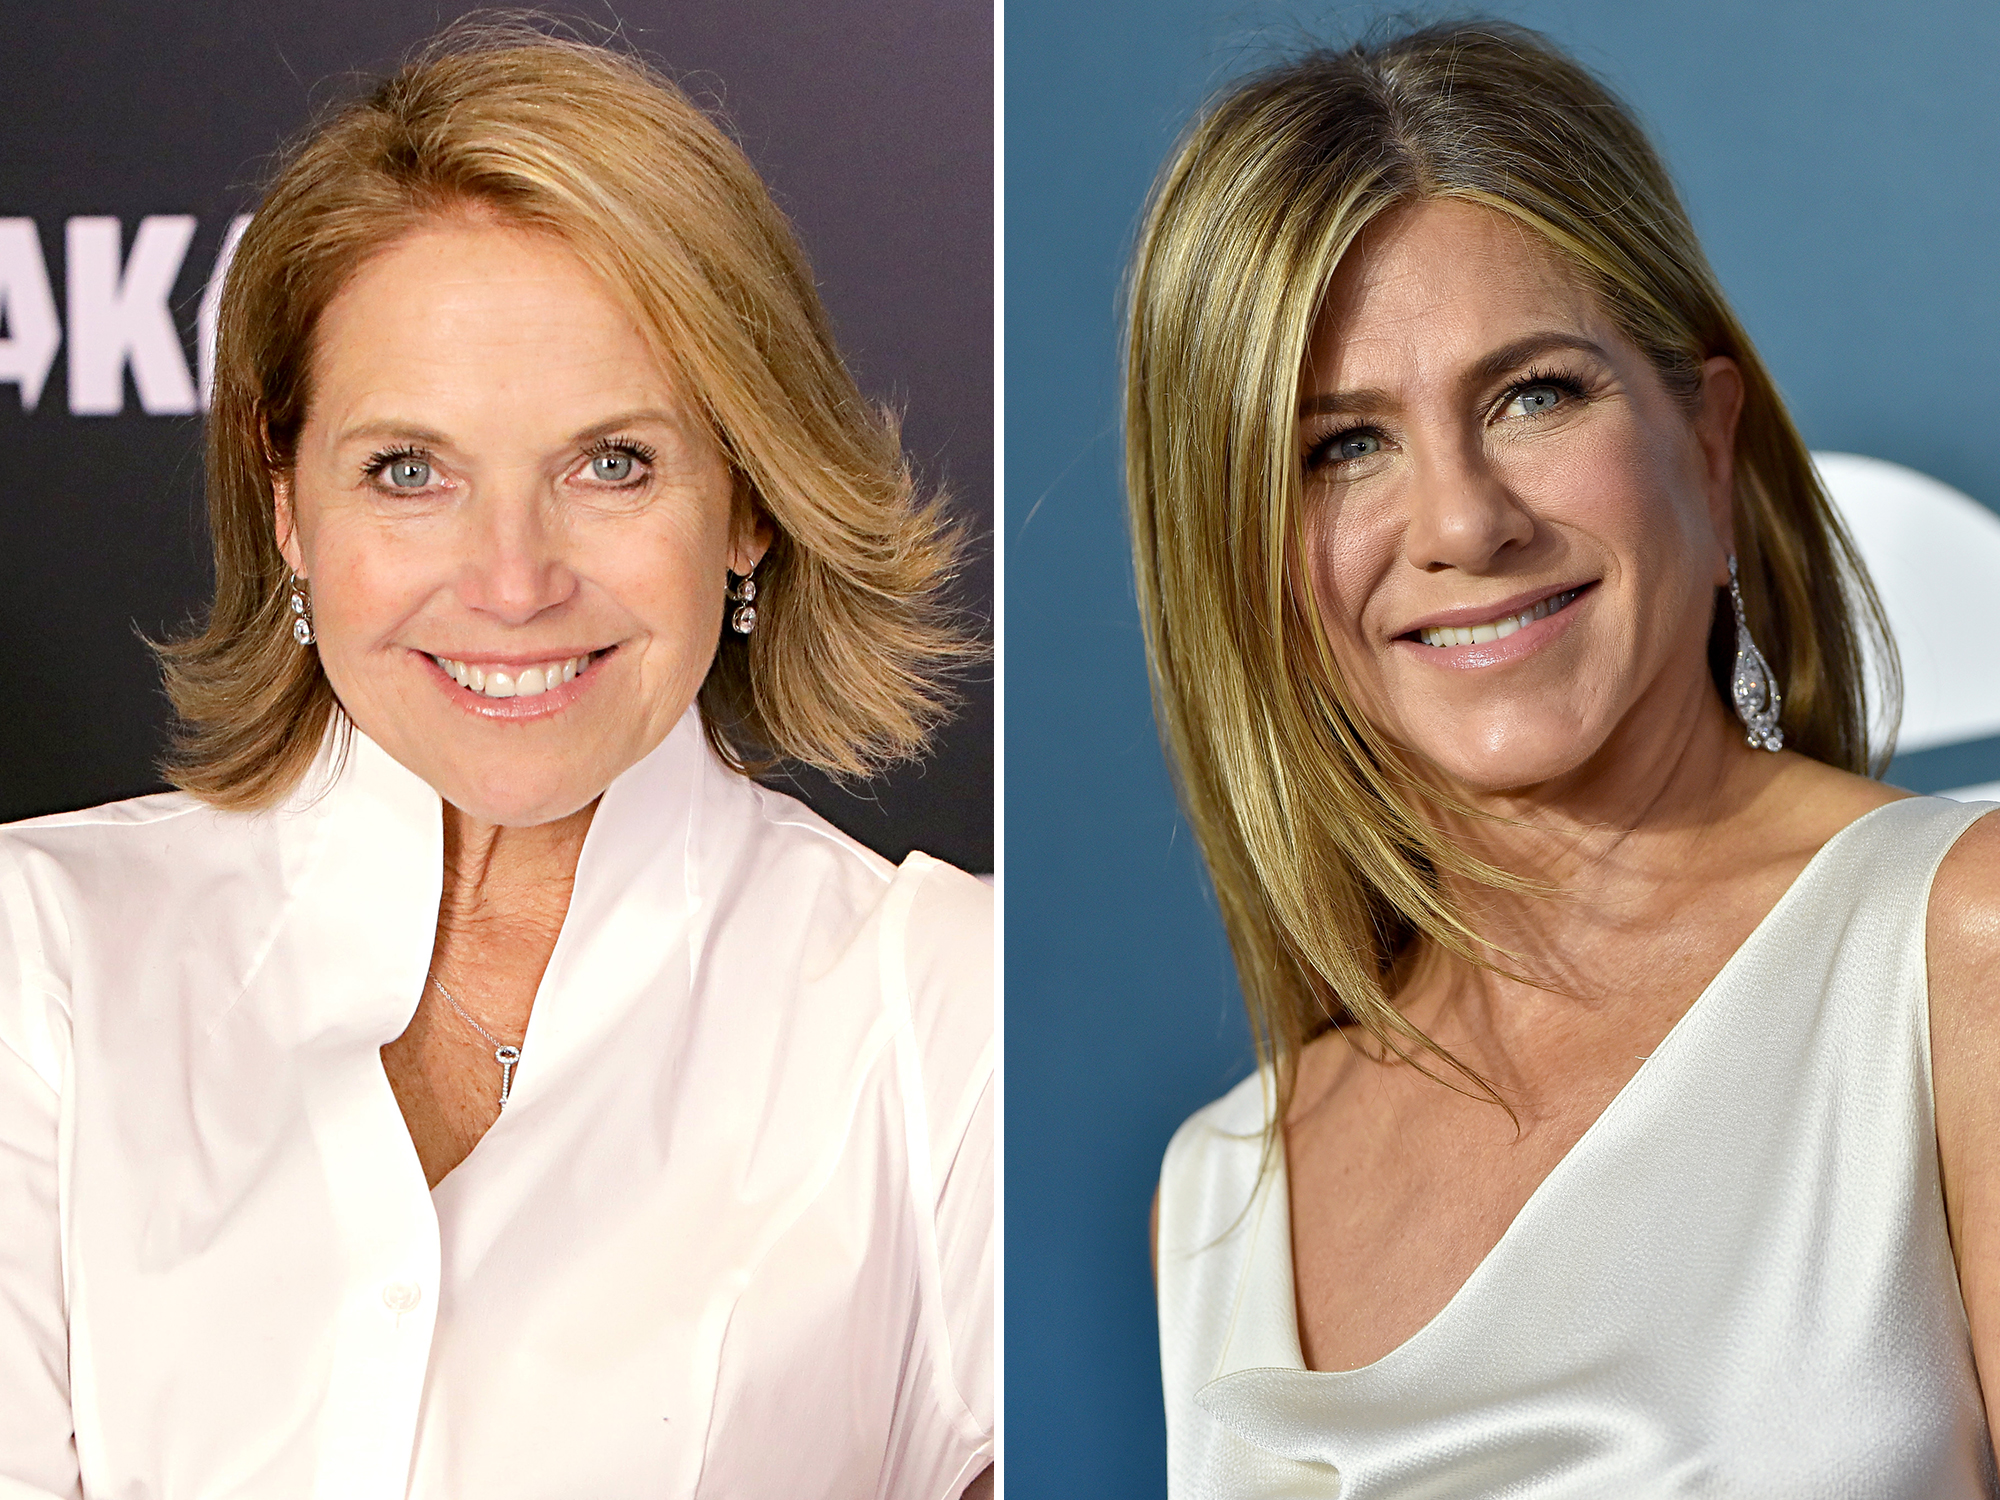 NEWS: Katie Couric Responds to Jennifer Aniston's Morning Show Character